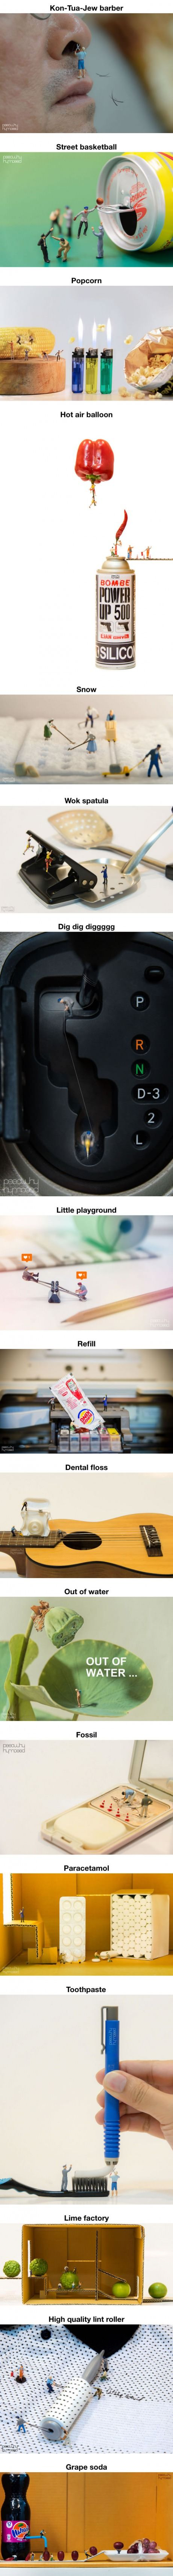 Artist Captures Miniature People Dealing With Everyday Life Objects (By PeeOwhY)